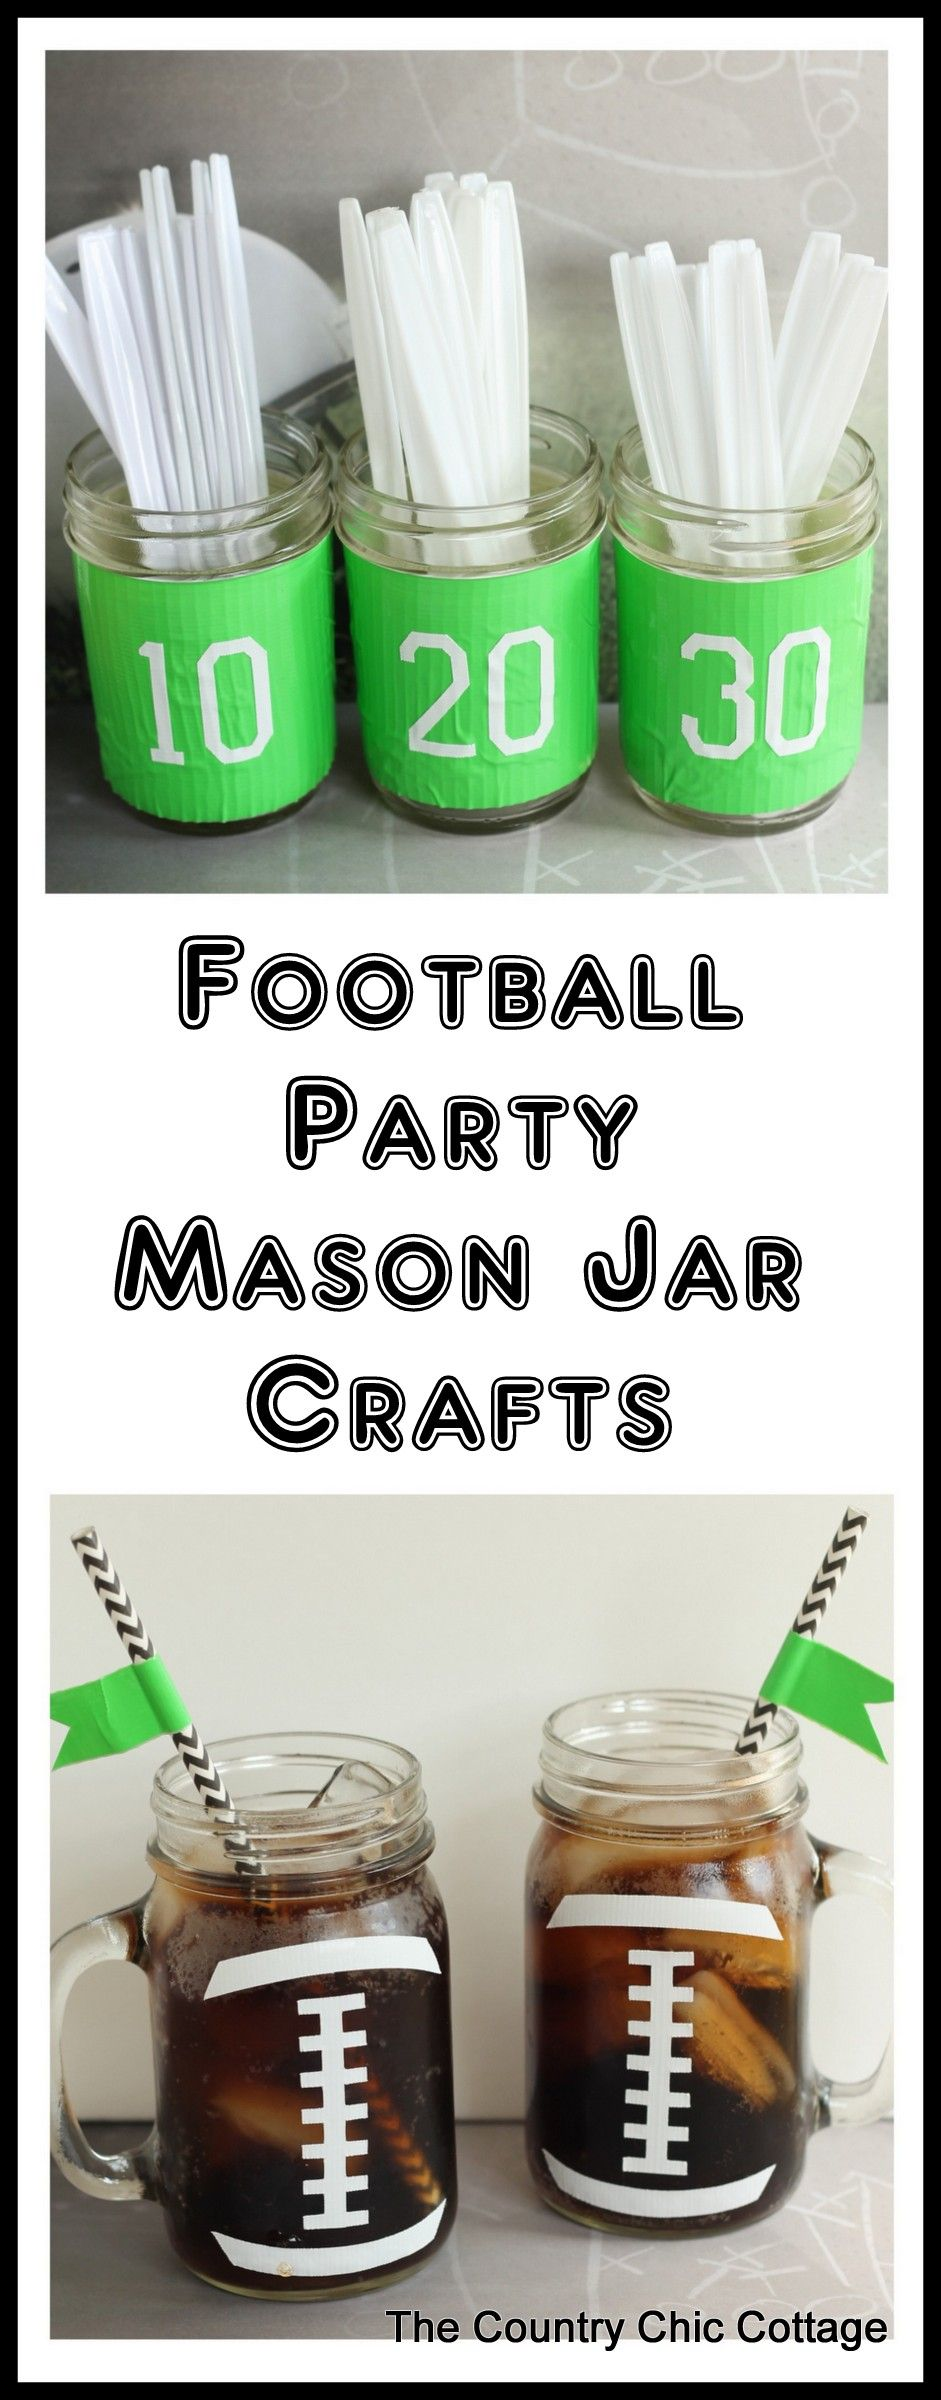 Crafts With Mason Jars Football Party Mason Jar Crafts Mason Jar Crafts Craft And